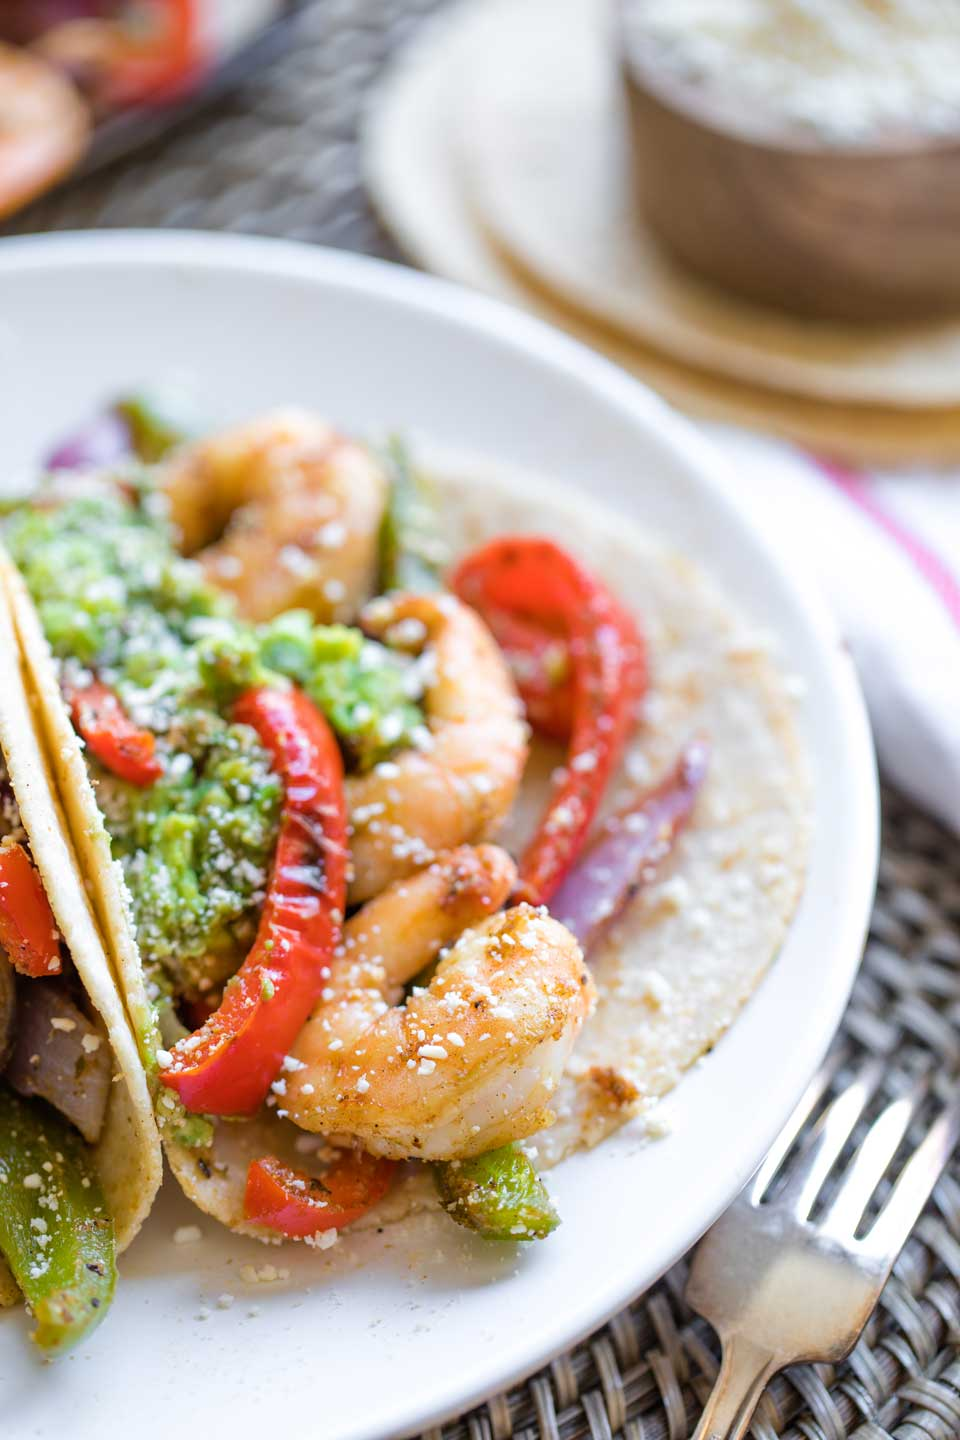 Closeup of one of these fajitas on a plate, so you can see the texture of the shrimp and peppers, with guacamole and sprinkled cheese on top and a fork in the foreground.